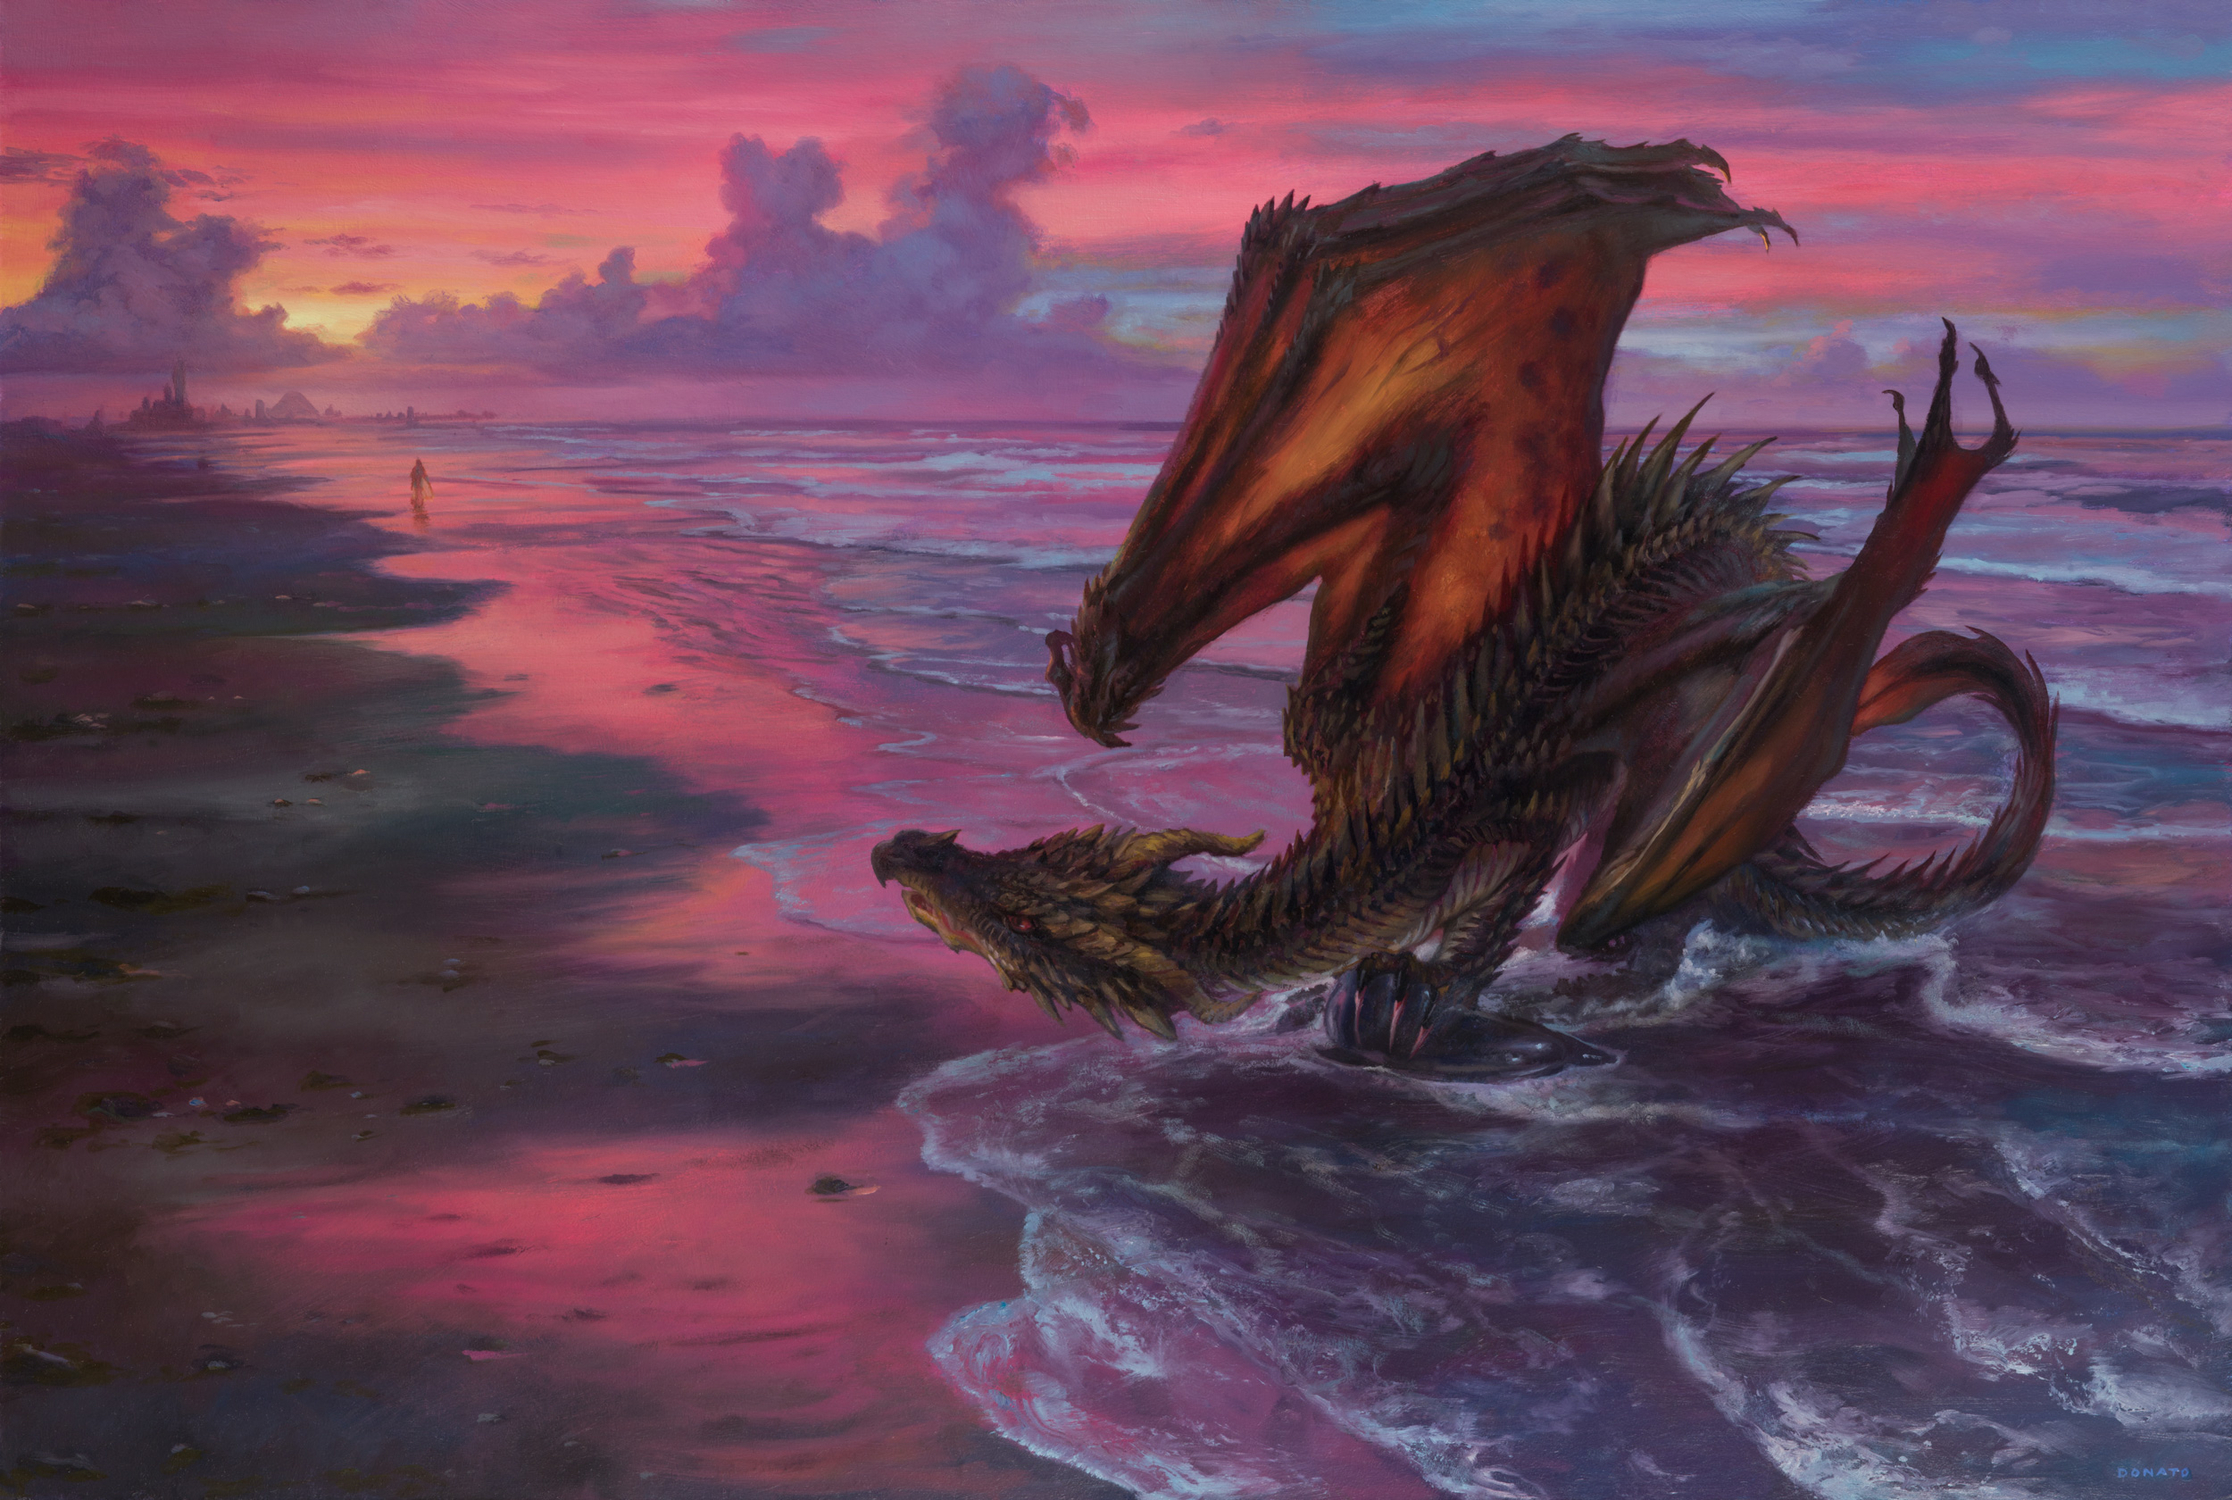 Drogon and Daenerys in Slaver's Bay Artwork by Donato Giancola